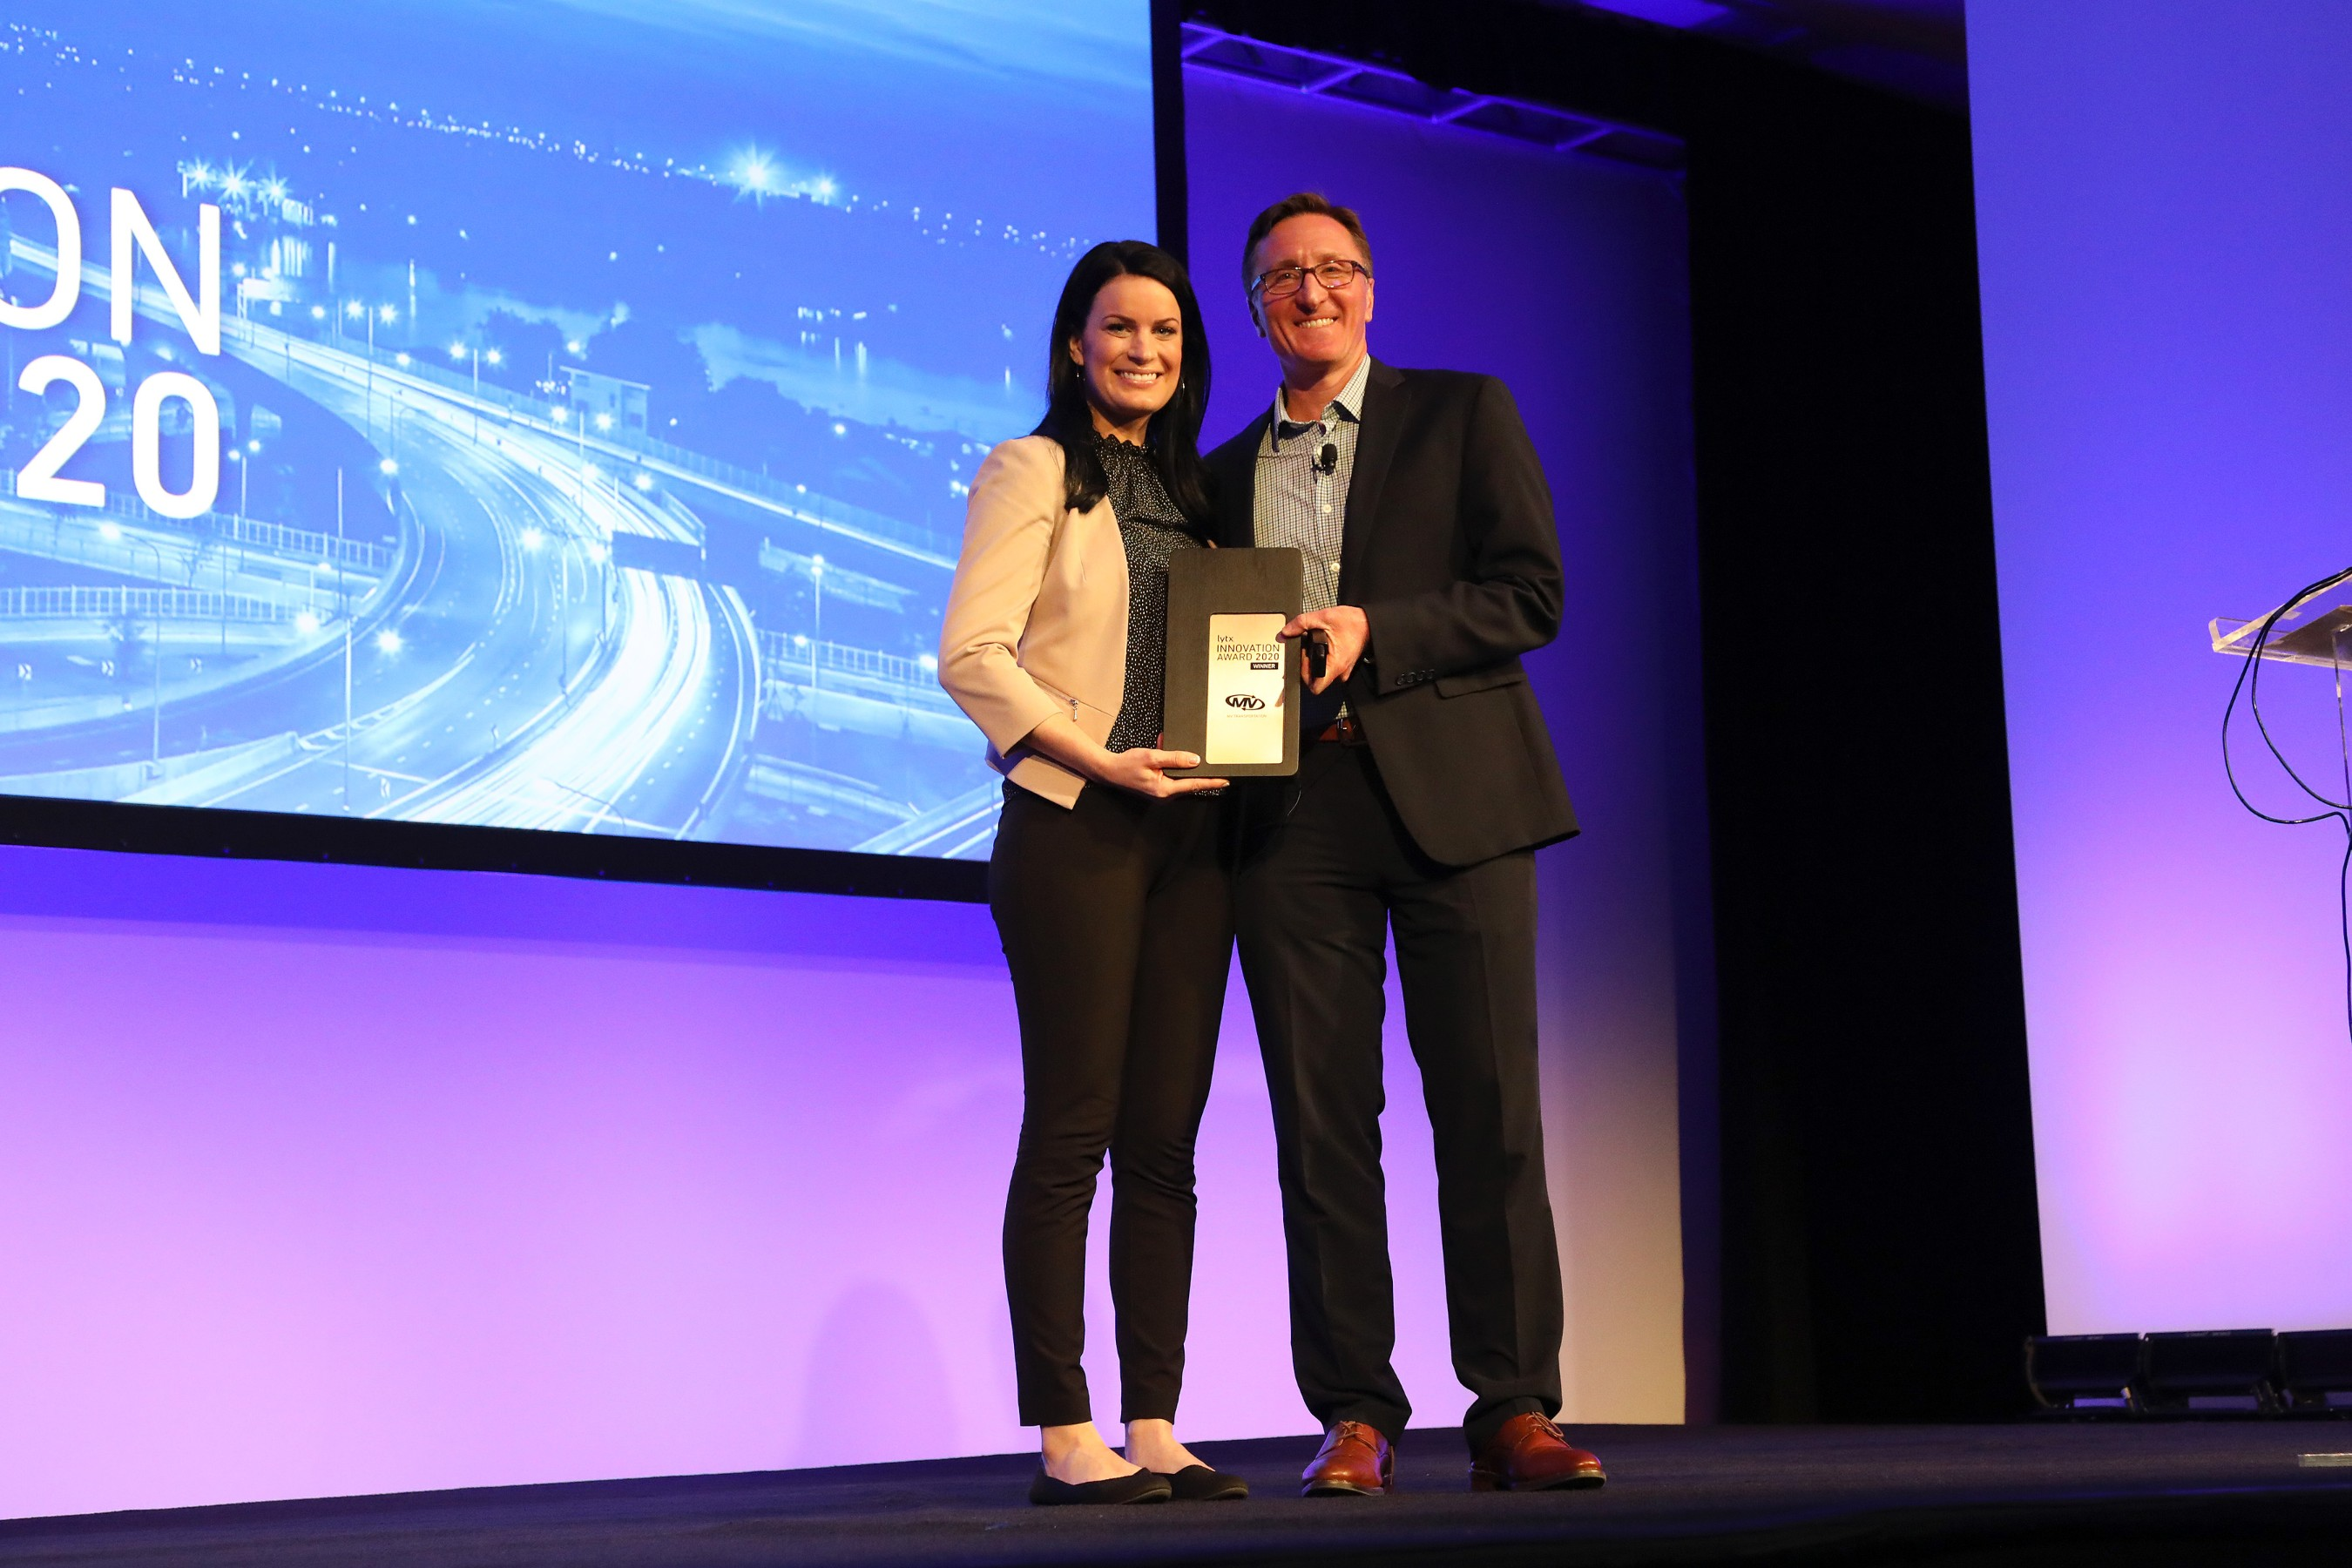 Stephanie Weber, Vice President of Safety Operations, MV Transportation, accepts Lytx inaugural 2020 Lytx Innovation Award from David Riordan, Lytx EVP and Chief Client Officer, at Lytx's User Group Conference. MV is a co-winner of the award, with Dycom Industries.